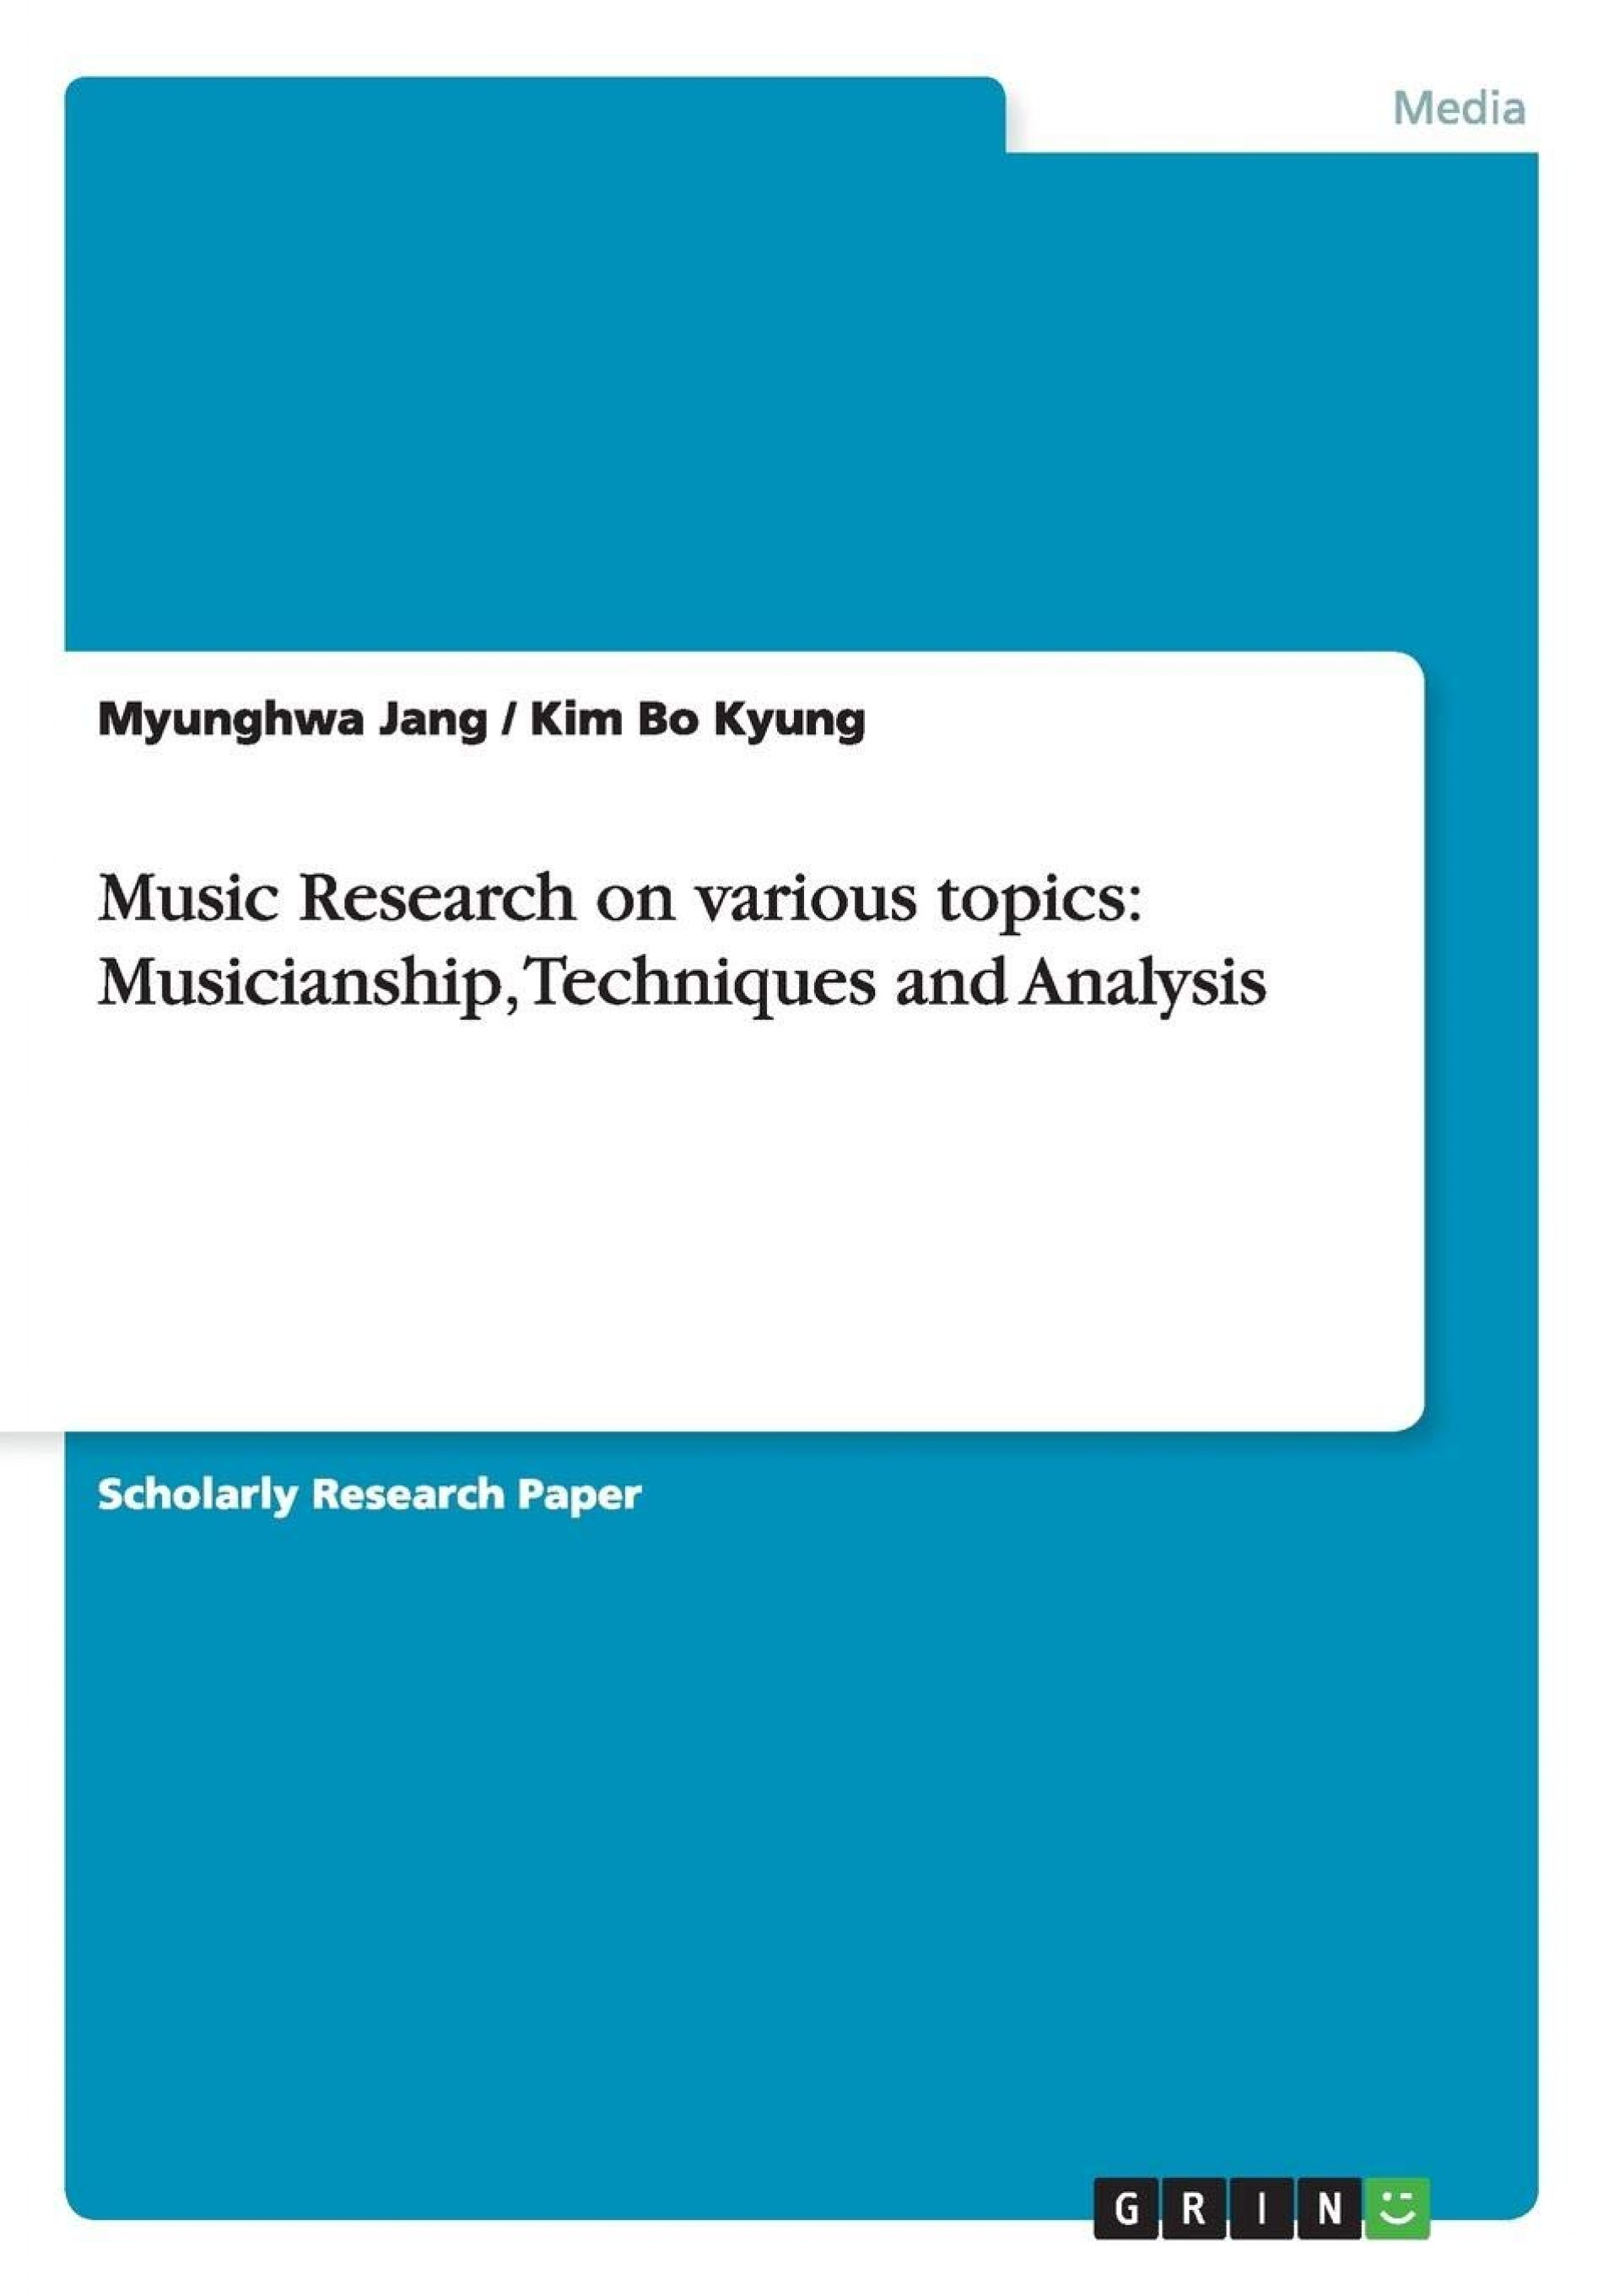 019 Popular Music Research Paper Topics Fantastic Related 1920